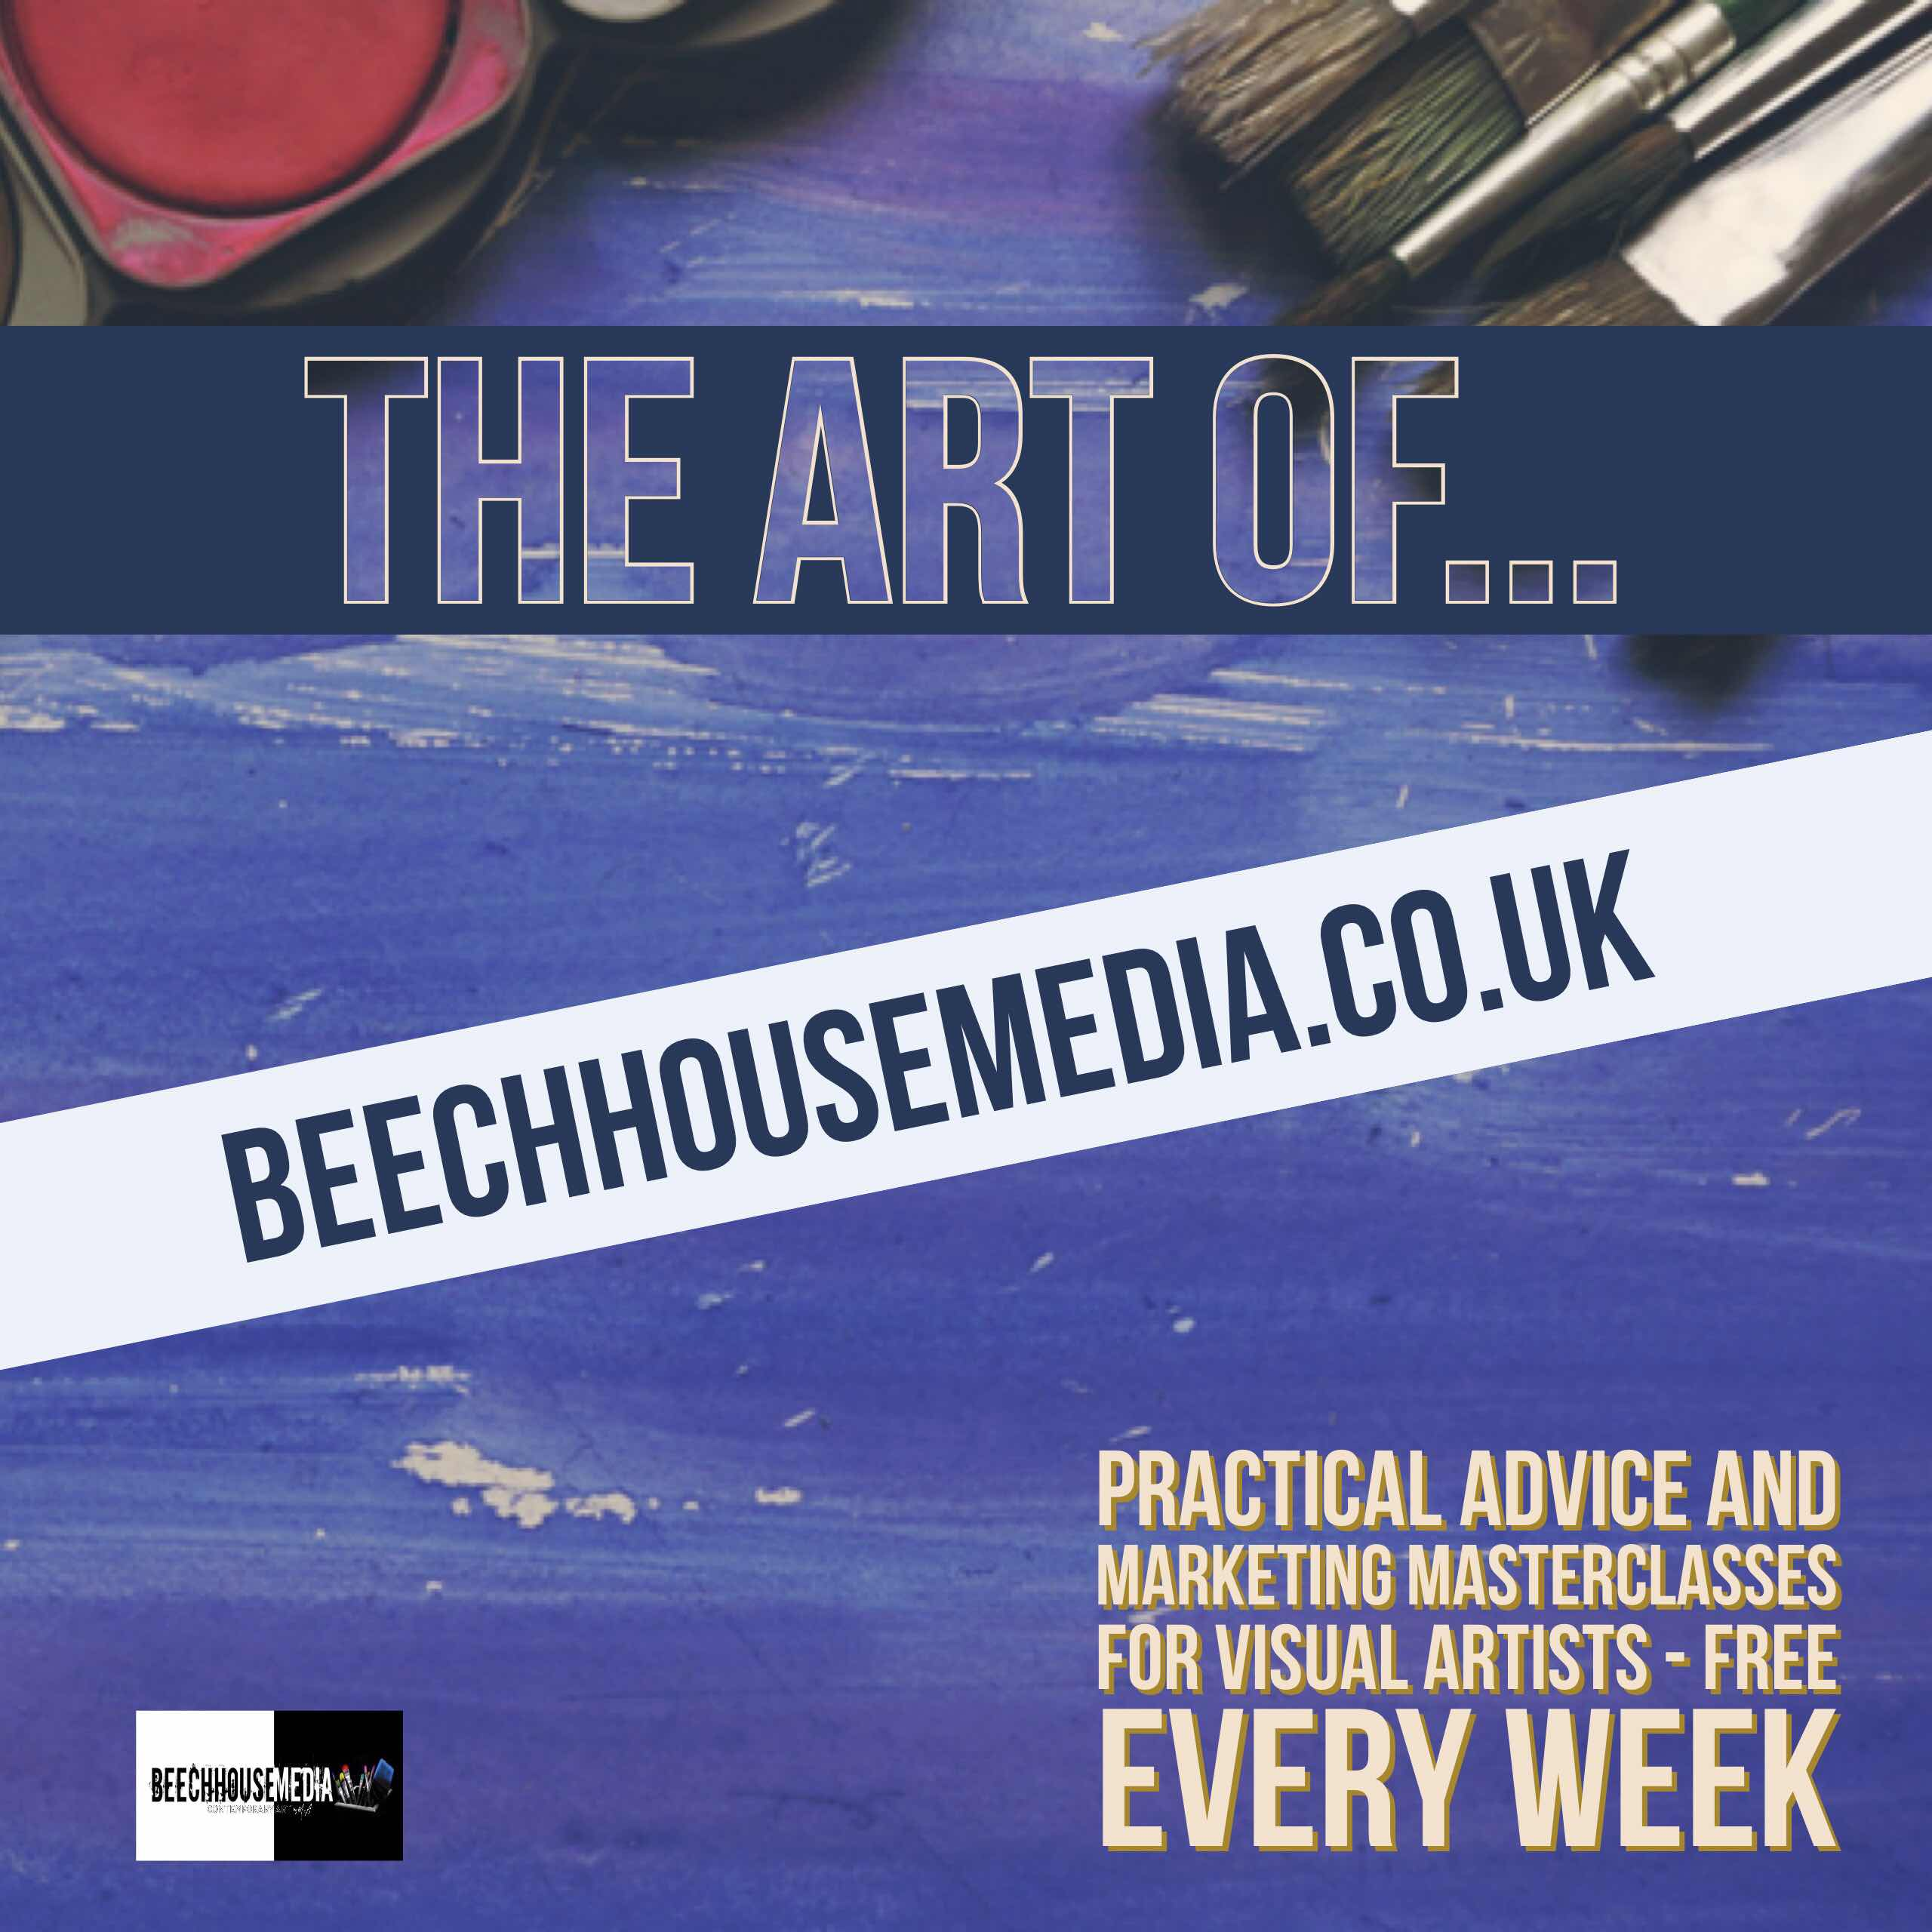 the Art of beechhouse media Mark Taylor artist